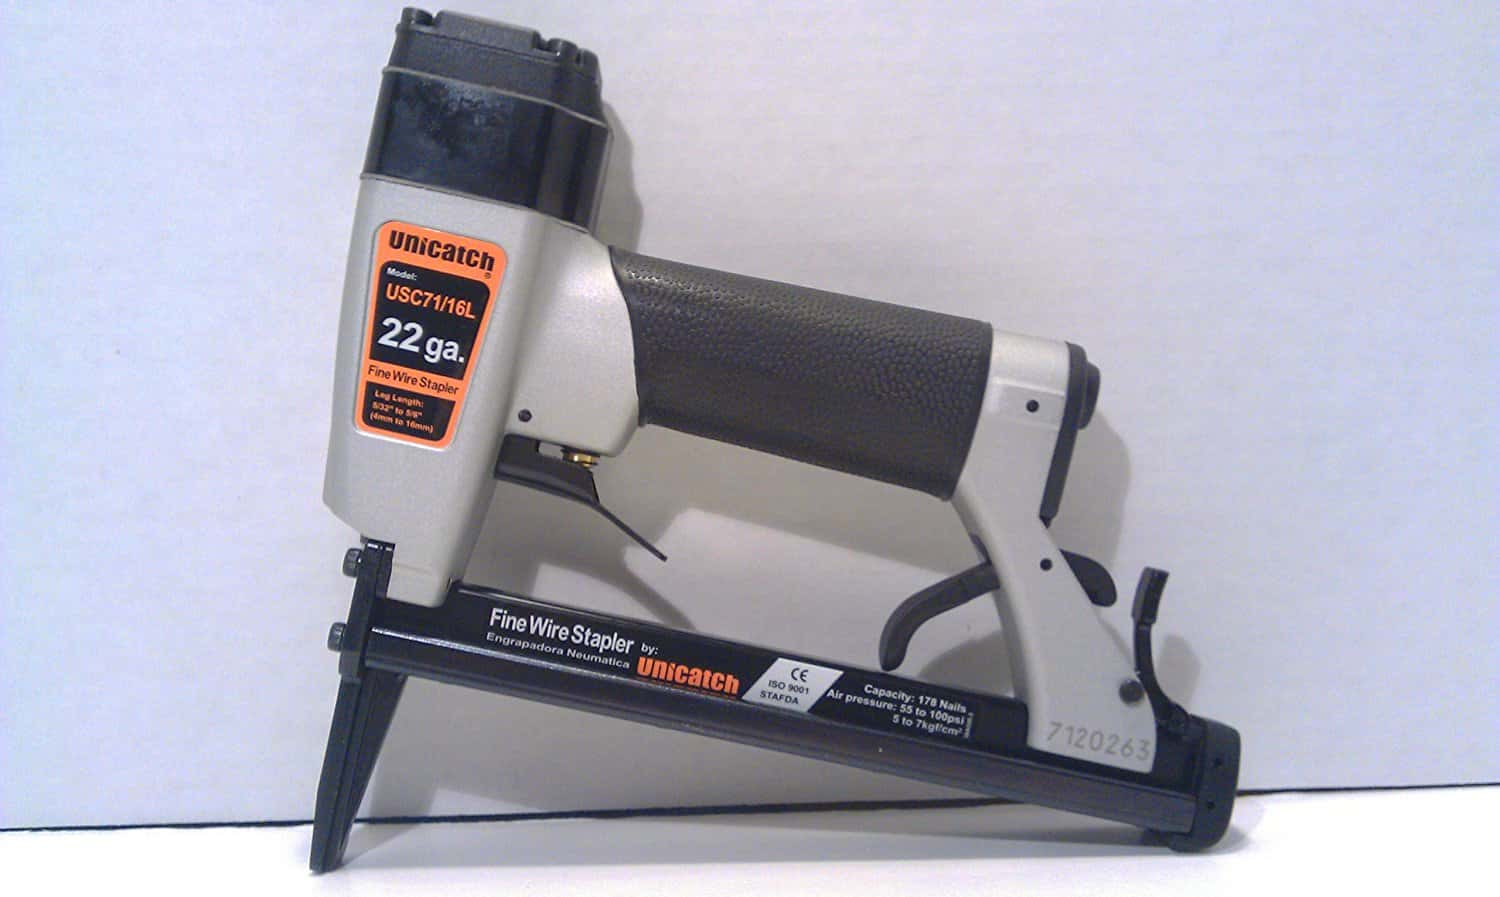 "Unicatch USC71/16L (US2238AL) Long Nose Upholstery Stapler 22 Gauge 3/8"" Crown"